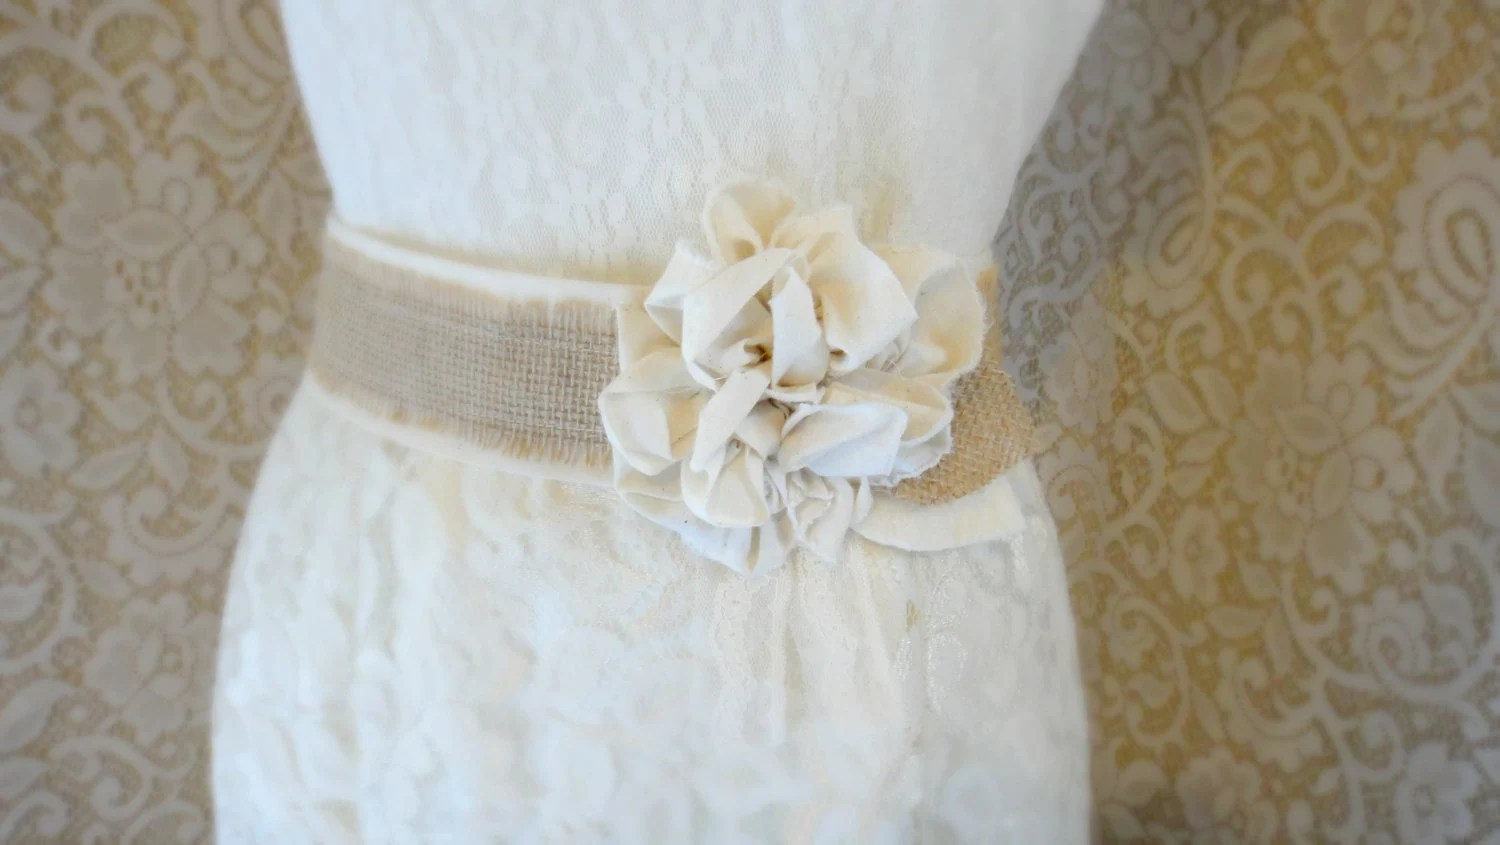 burlap wedding sash wedding sash Burlap Wedding Sash Rustic Southern Barn Wedding Bridesmaid Rustic Chic Burlap Belt Bridal Sash